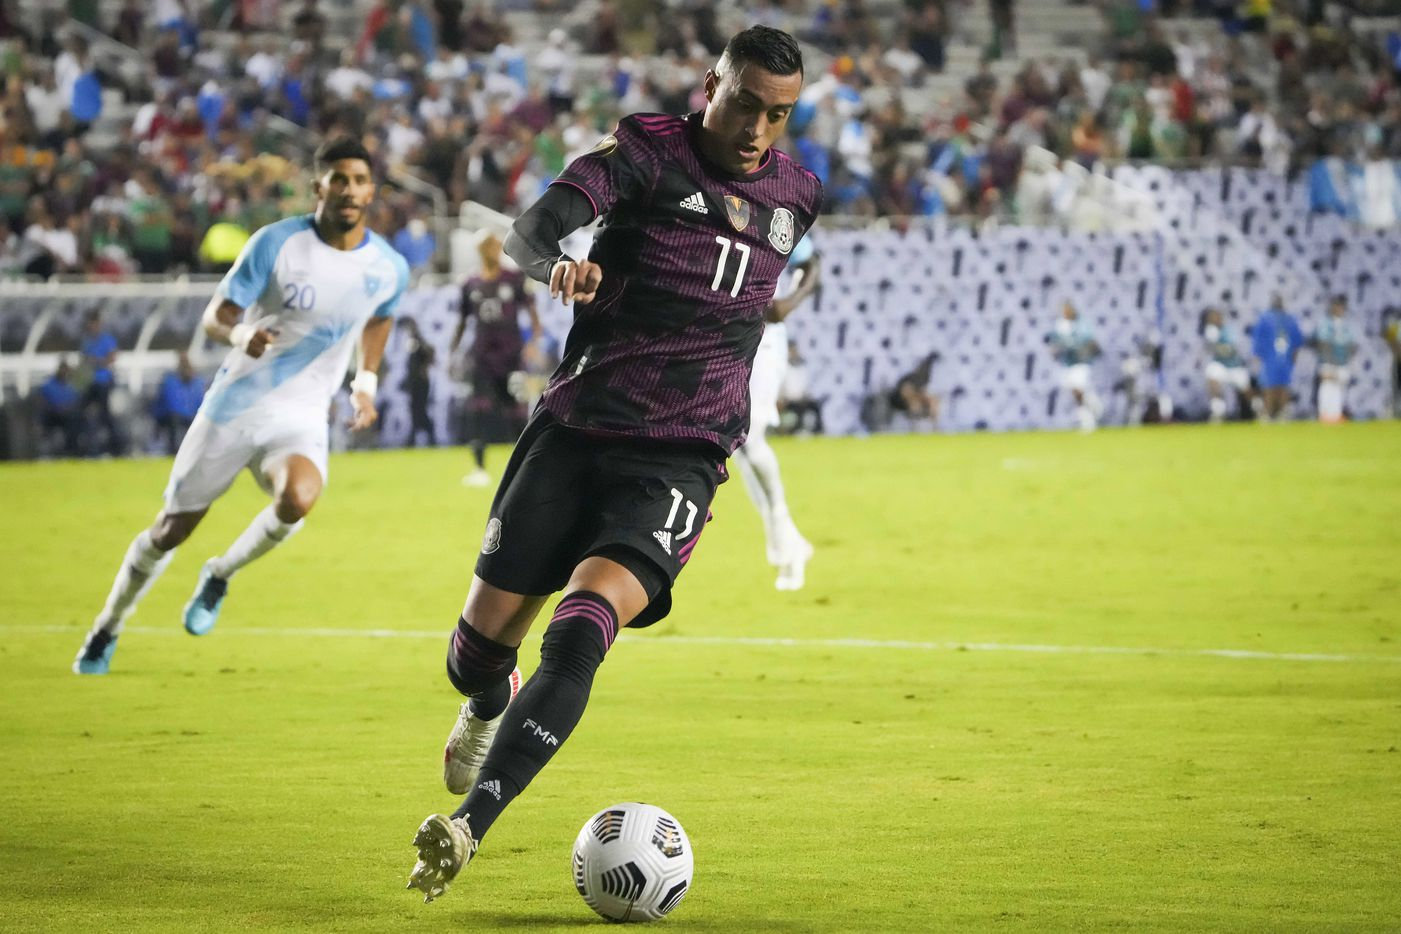 Mexico forward Rogelio Funes Mori controls the ball during the second half of a CONCACAF Gold Cup Group A soccer match against Guatemala at the Cotton Bowl on Wednesday, July 14, 2021, in Dallas.